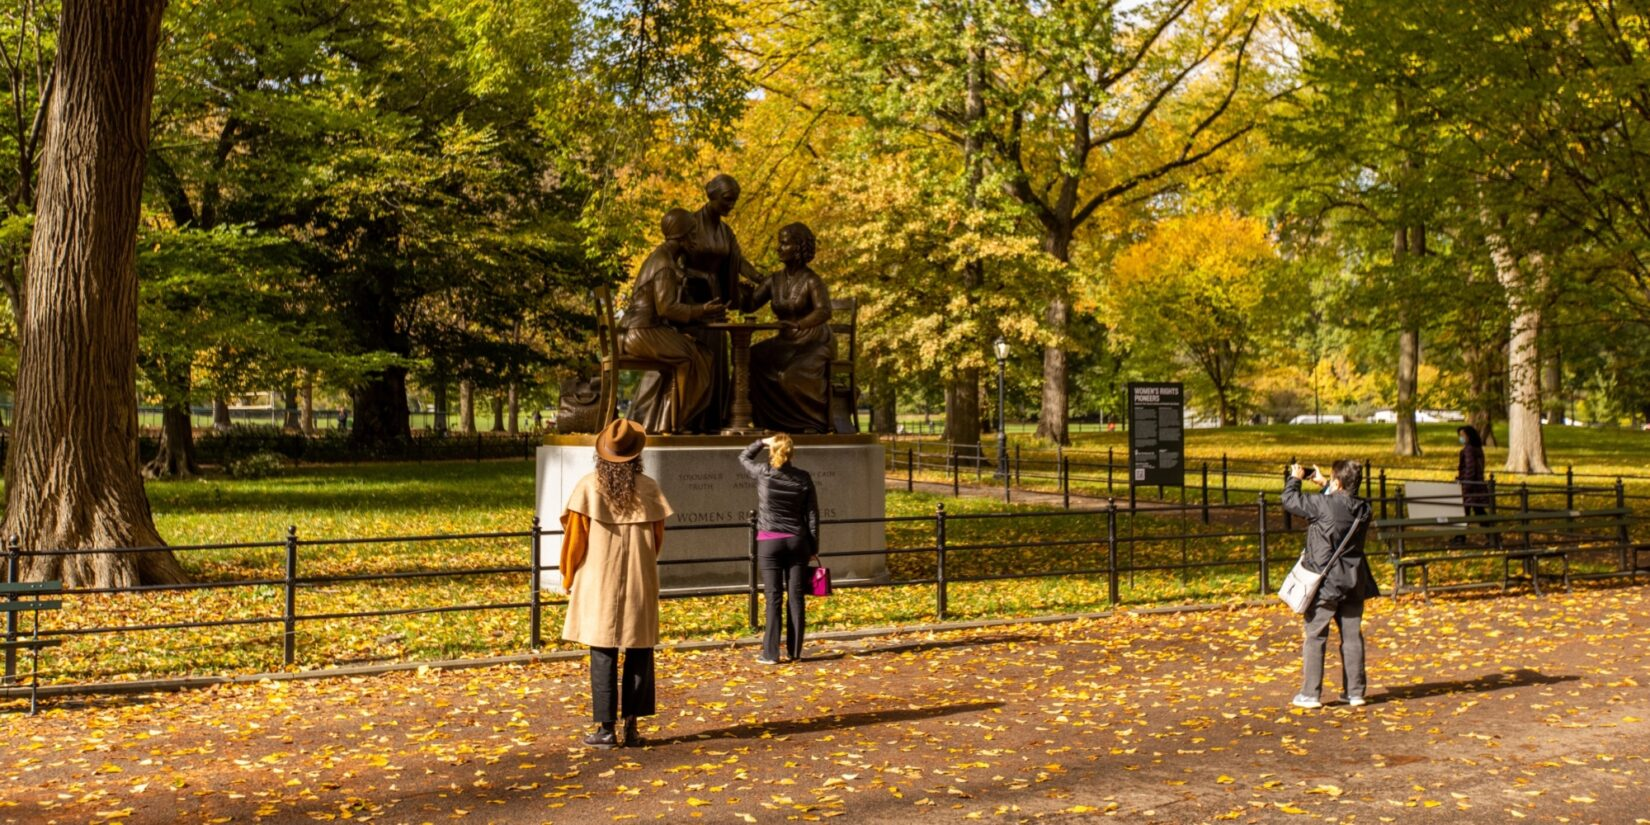 The monument is admired by a few parkgoers in autumn